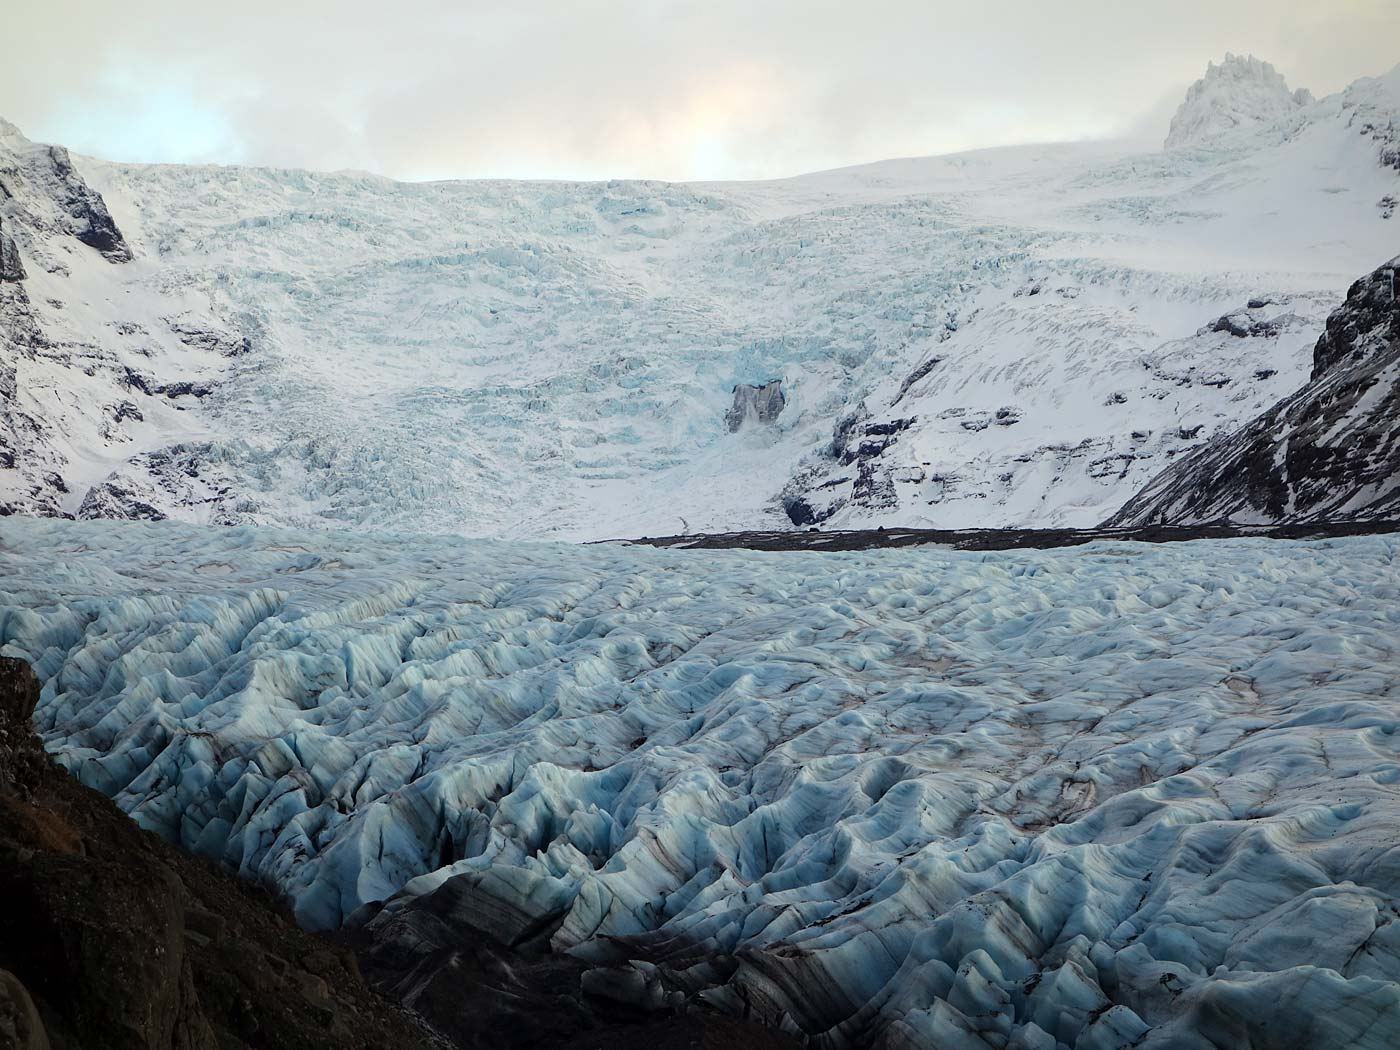 Movie Style Holiday, Iceland, Glacier Svinafellsjokull, Close view